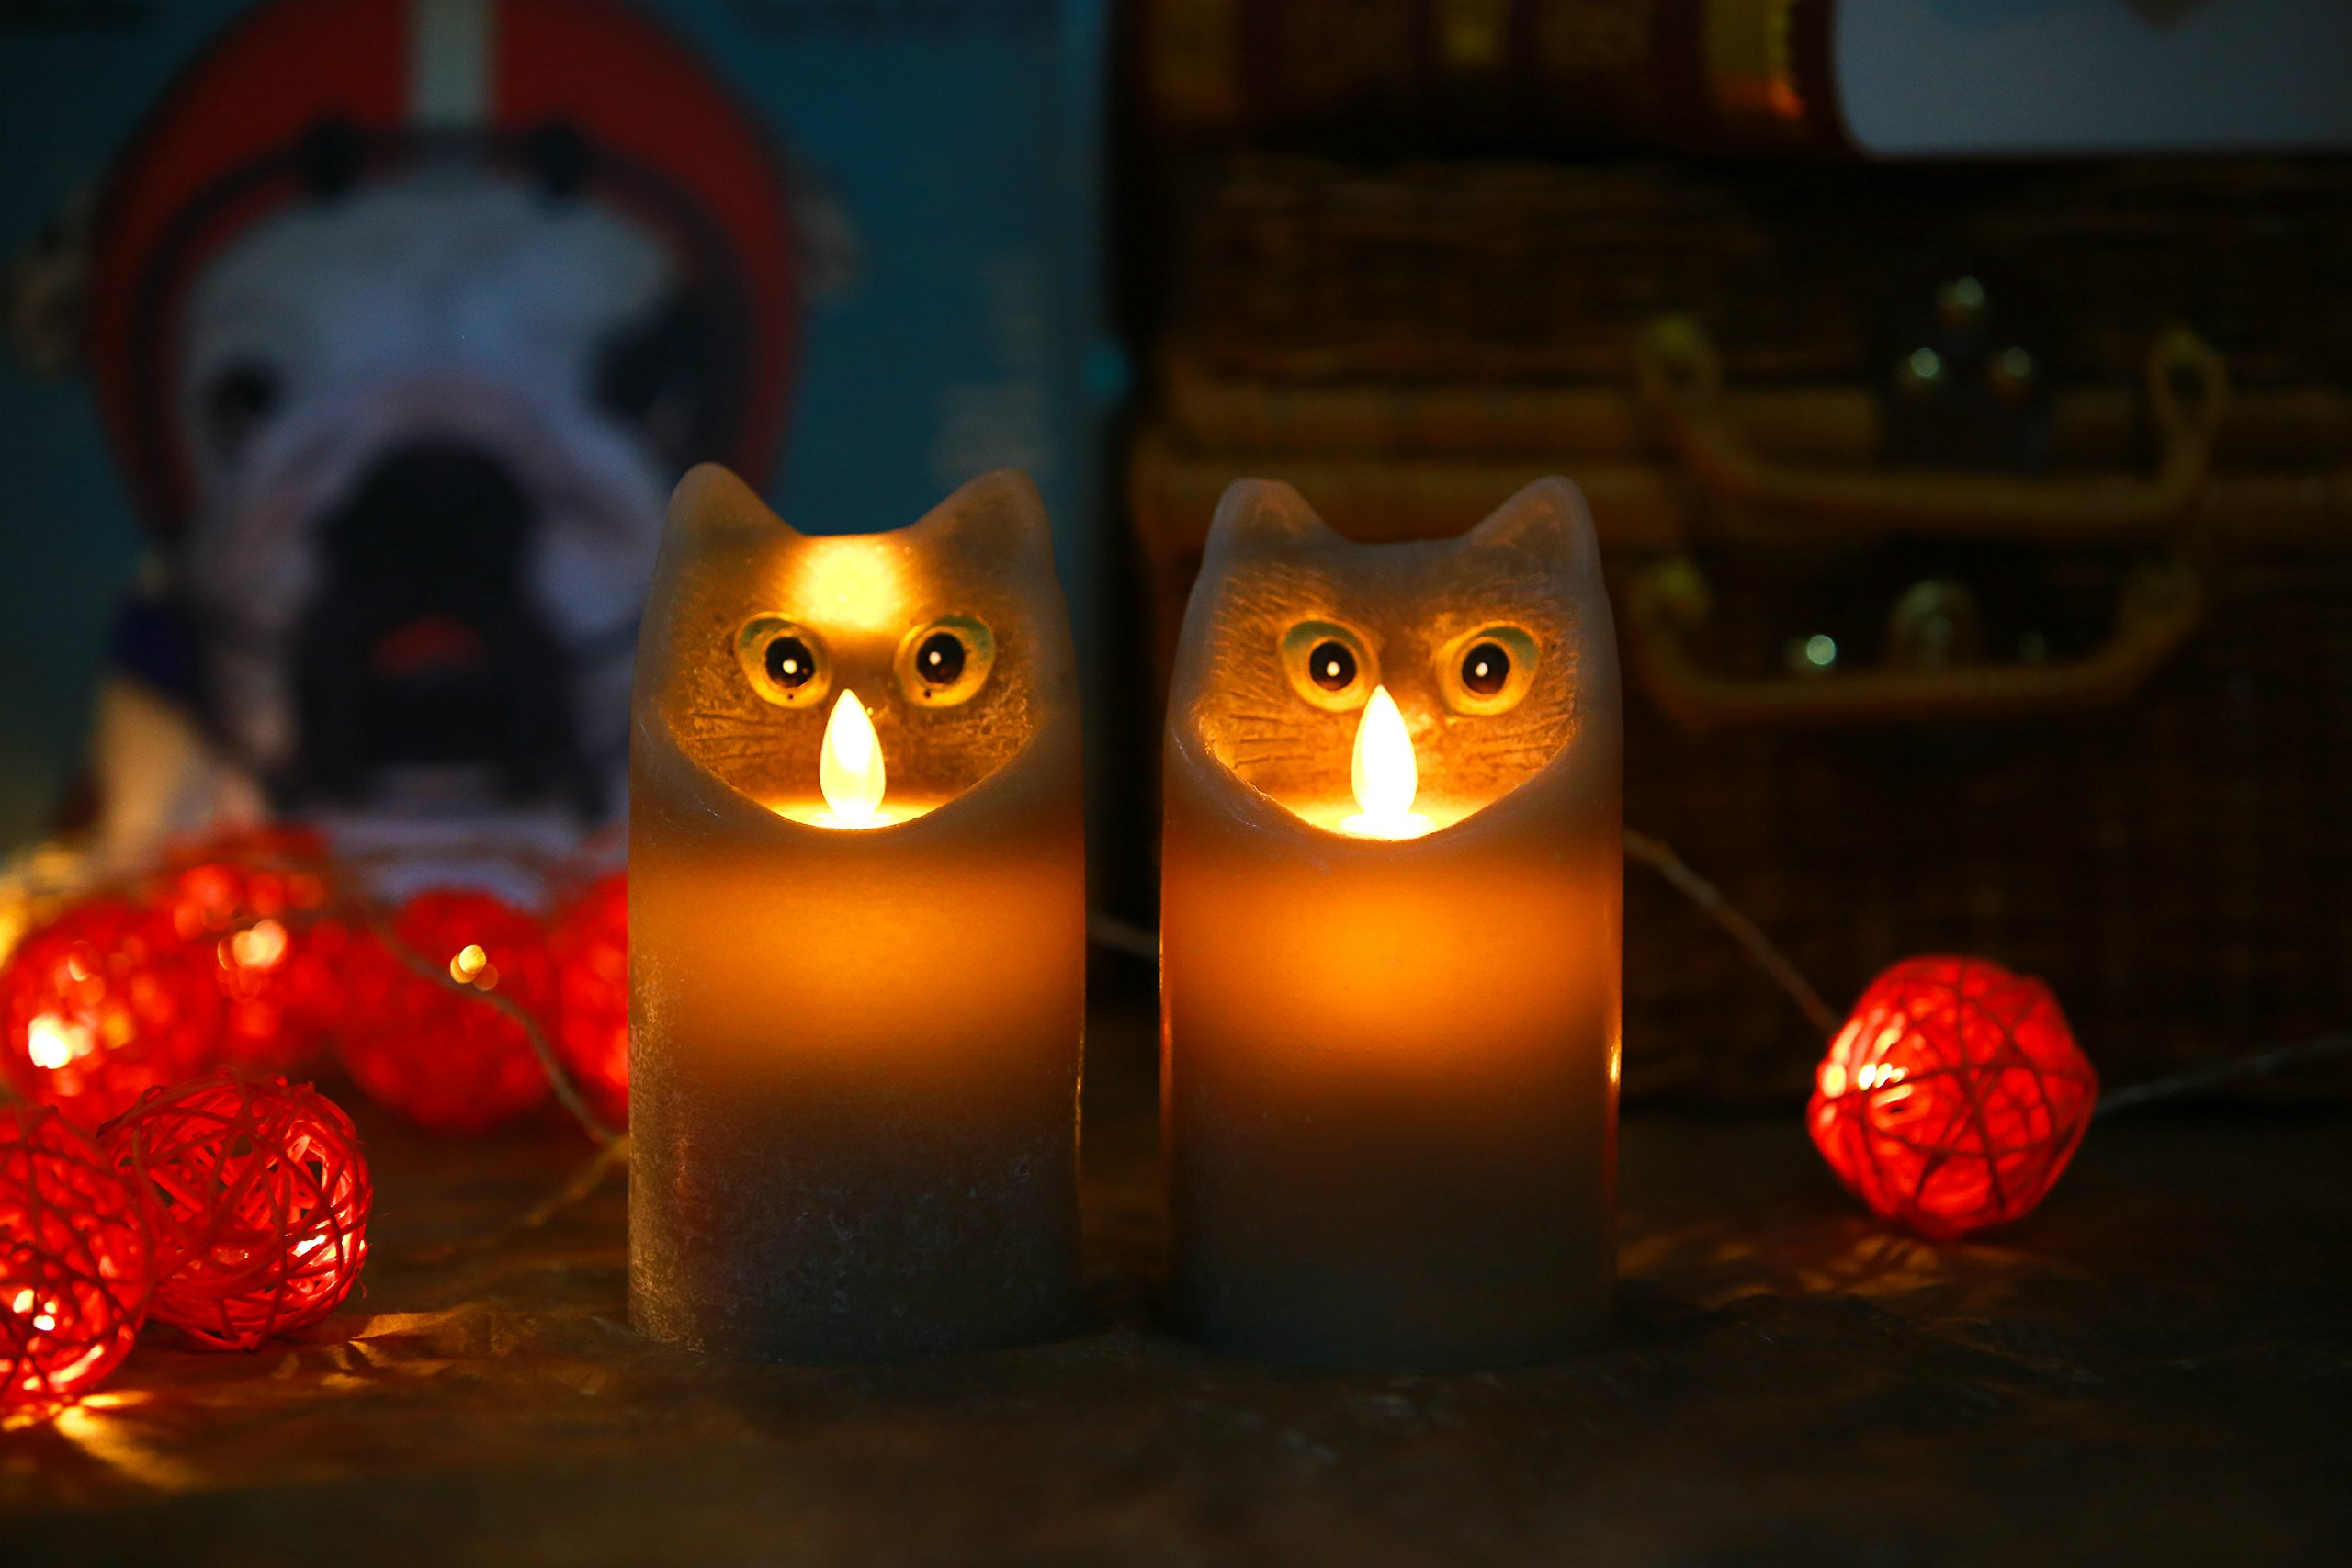 Kitch Aroma Marble Grey Color Cartoon Cat Flameless Candle with Timer For Birthday Gifts,Dia 3'' x H6'',Pack of 2 by Kitch Aroma (Image #4)